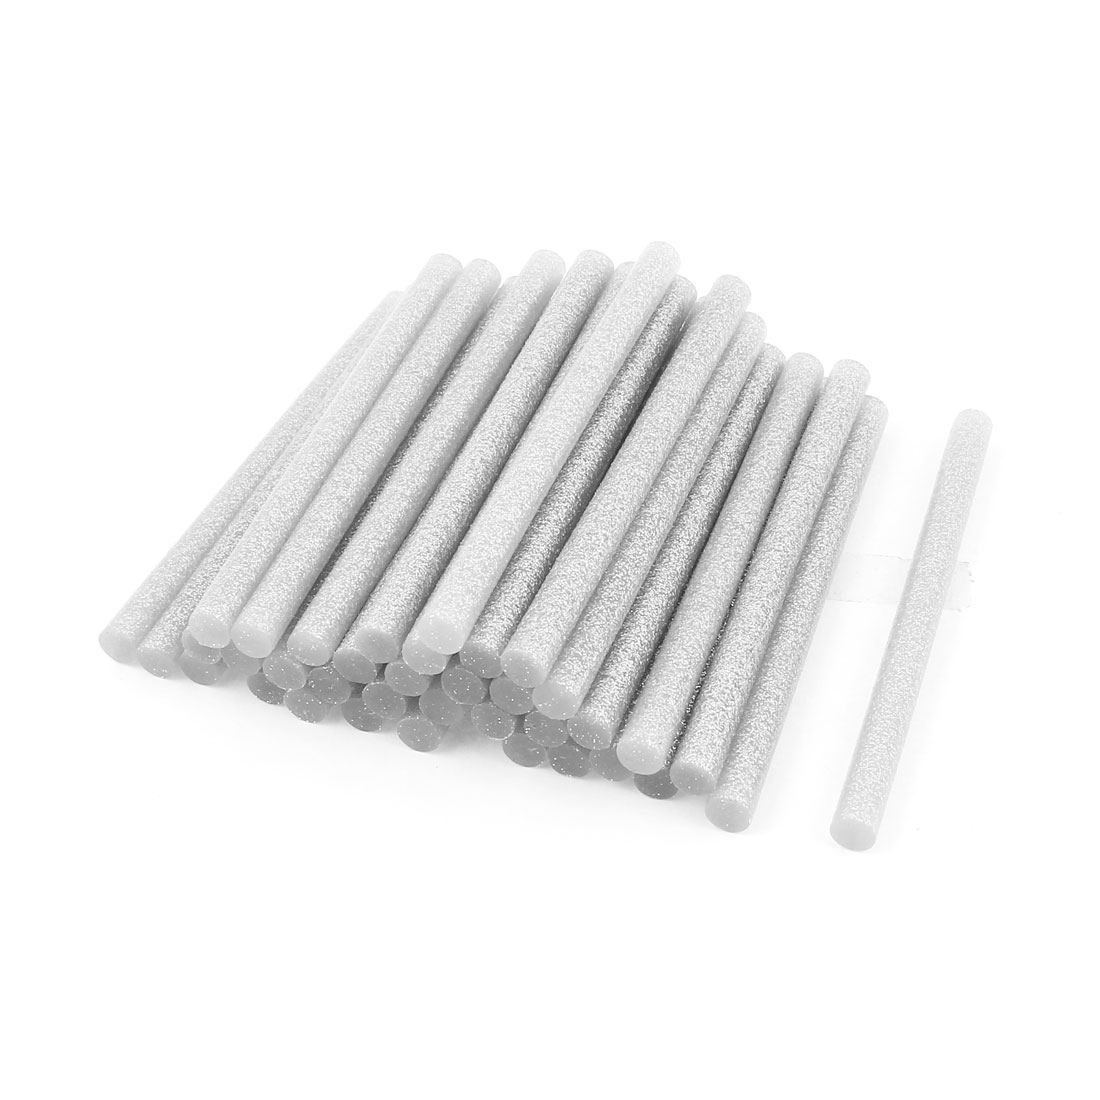 35 Pcs Silver Tone 7mm Diameter 100mm Length Crafting Models Hot Melt Glue Stick